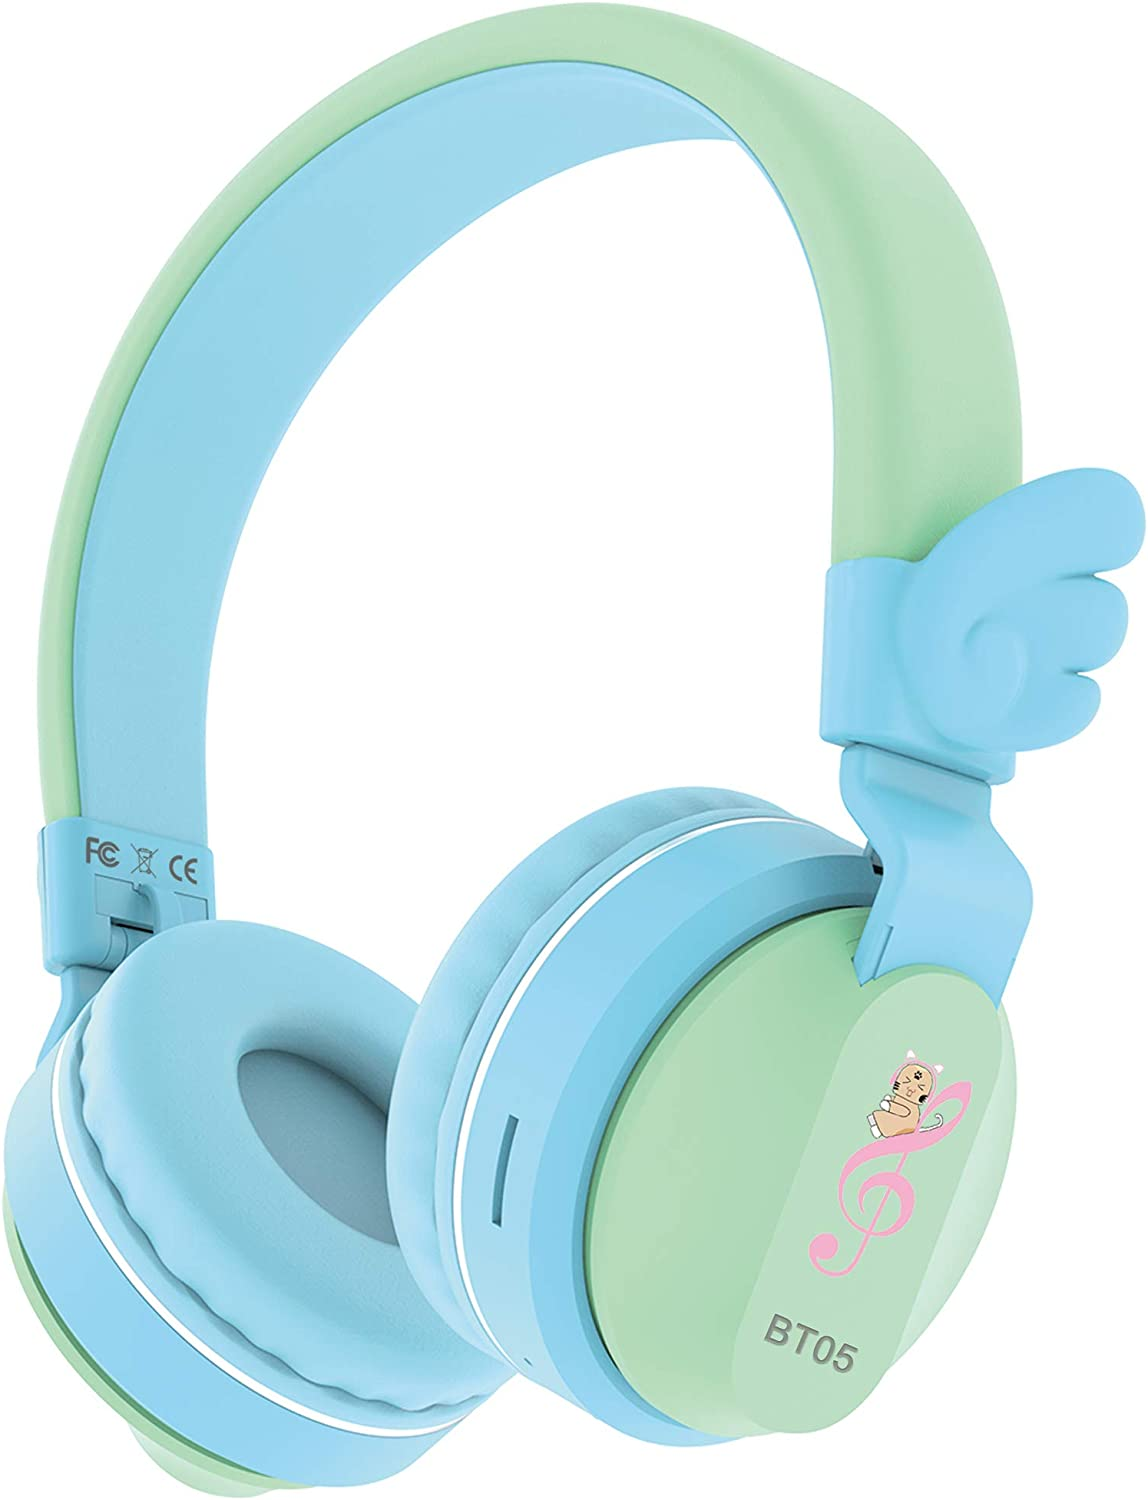 Riwbox BT05 Bluetooth Kids Headphones Wireless Foldable Headset Over Ear with Volume Limited and Mic/TF Card Compatible for iPad/iPhone/Tablet (Green&Blue)